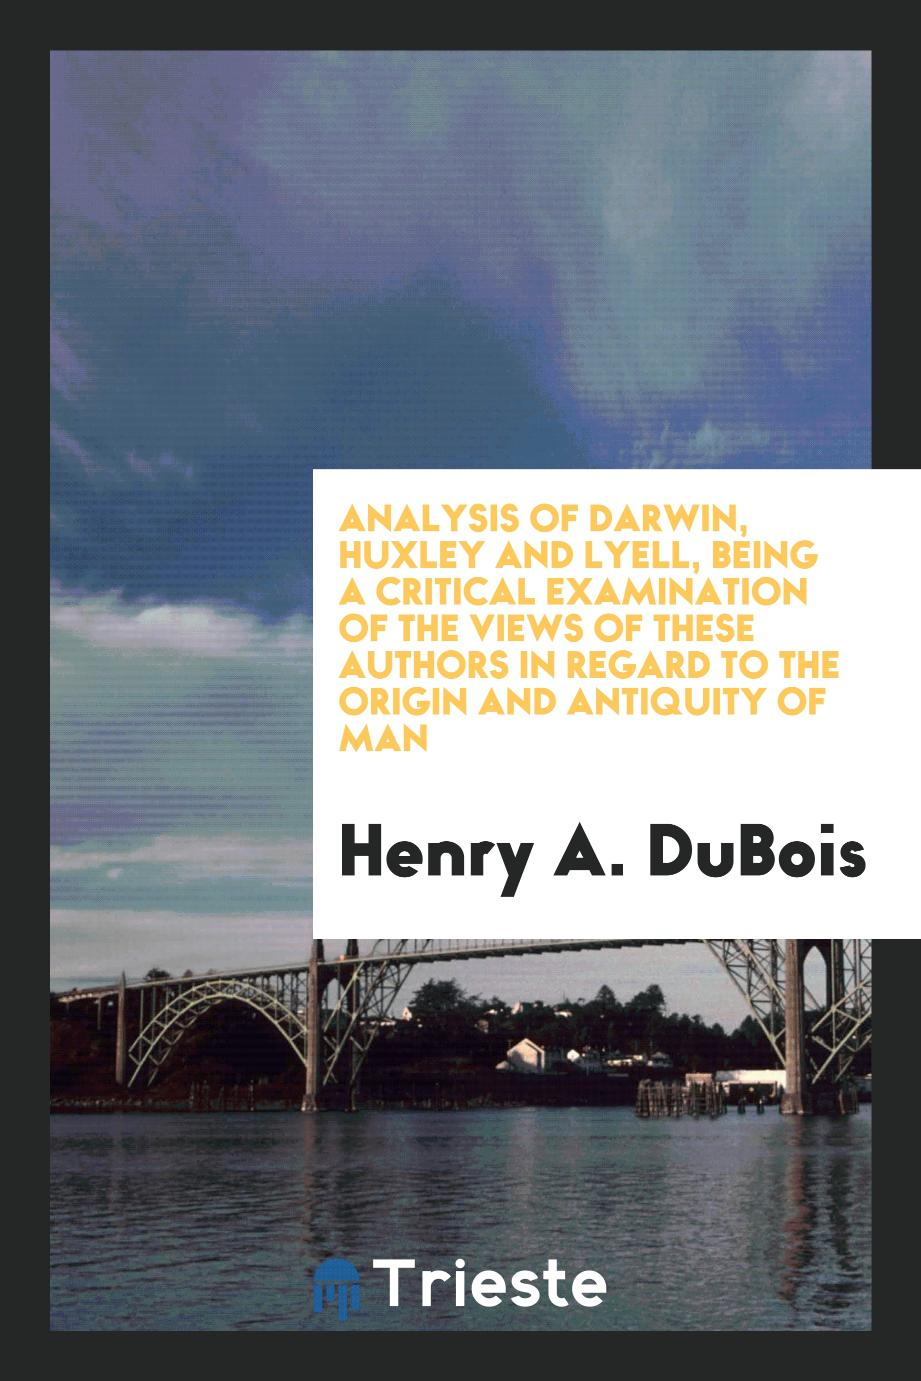 Analysis of Darwin, Huxley and Lyell, Being a Critical Examination of the Views of These Authors in Regard to the Origin and Antiquity of Man